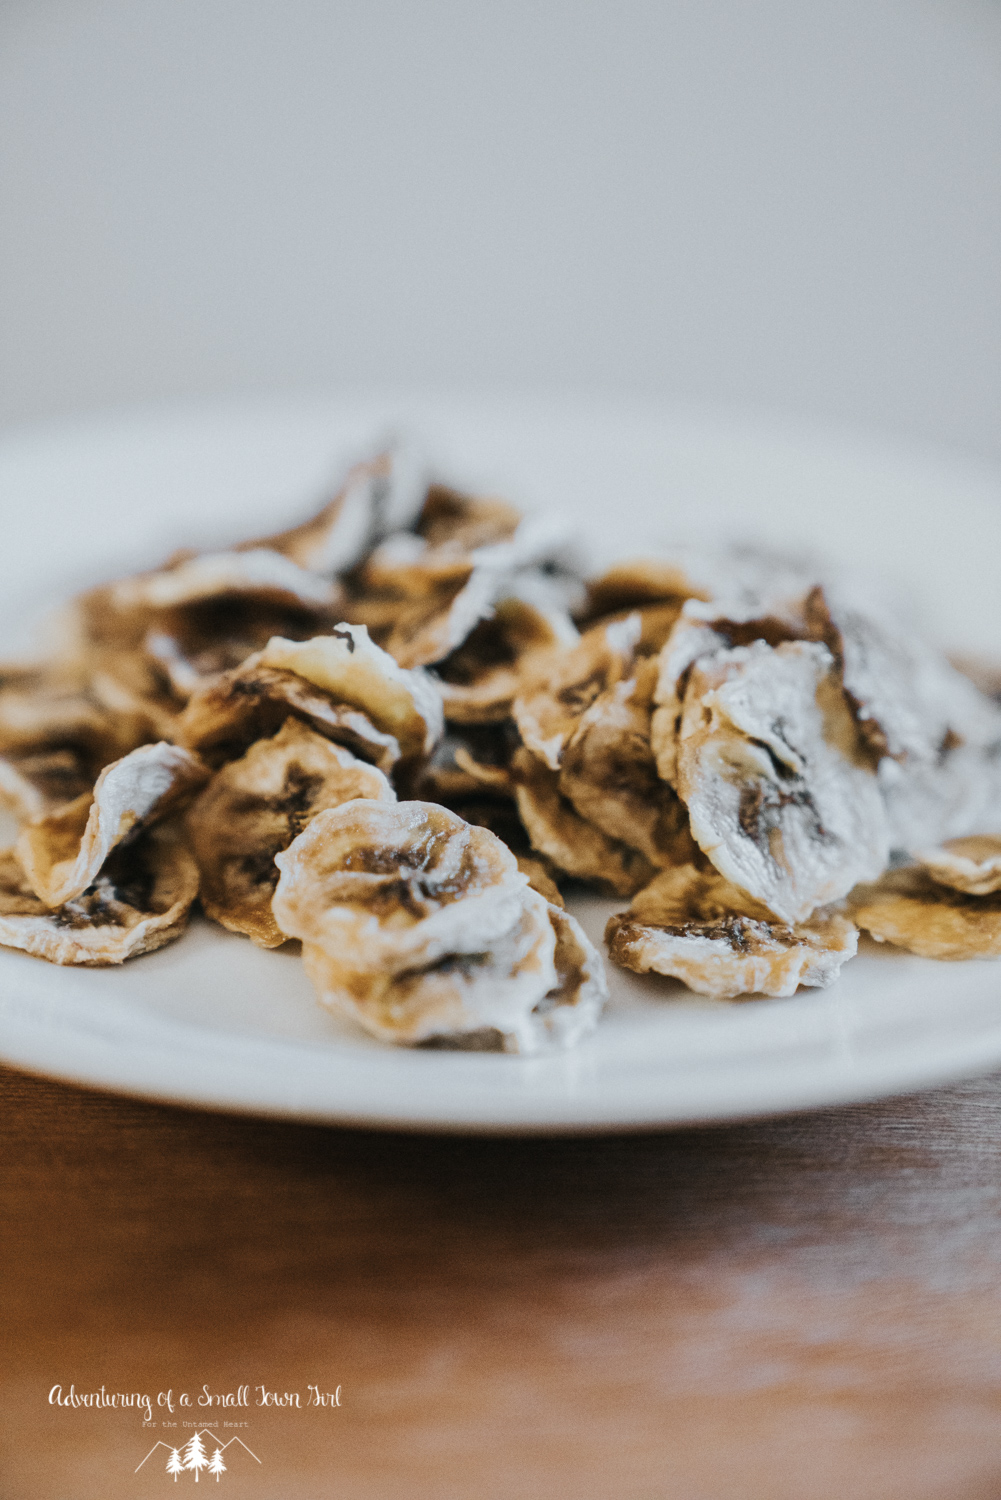 Dehydrated Banana Chips Recipe by Adventuring of a Small Town Girl - Backpacking Recipes - Dehydrator Recipes - Recipes for adventures by ASTG